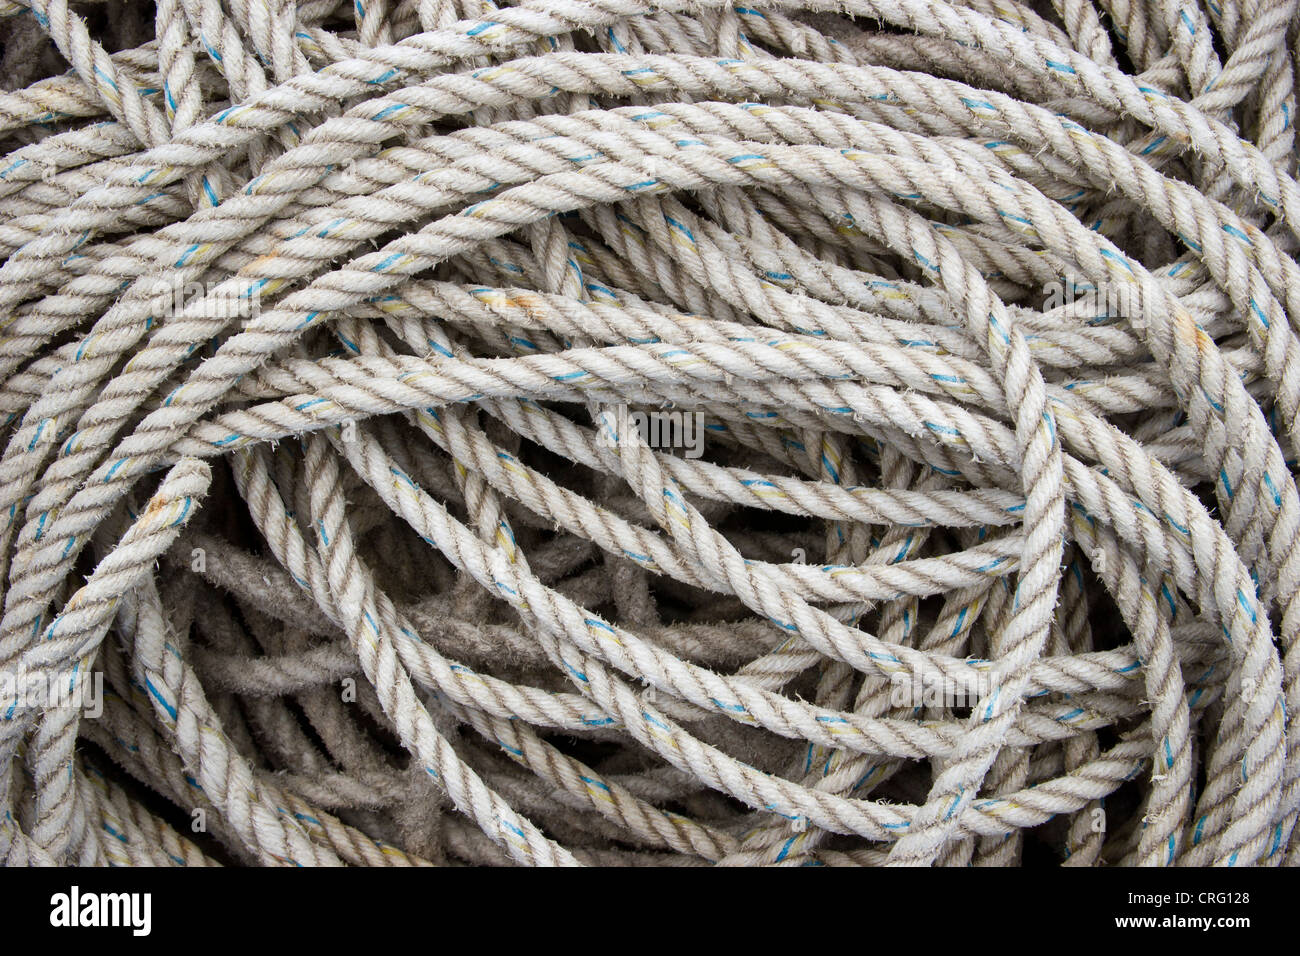 Coil of rope - Stock Image